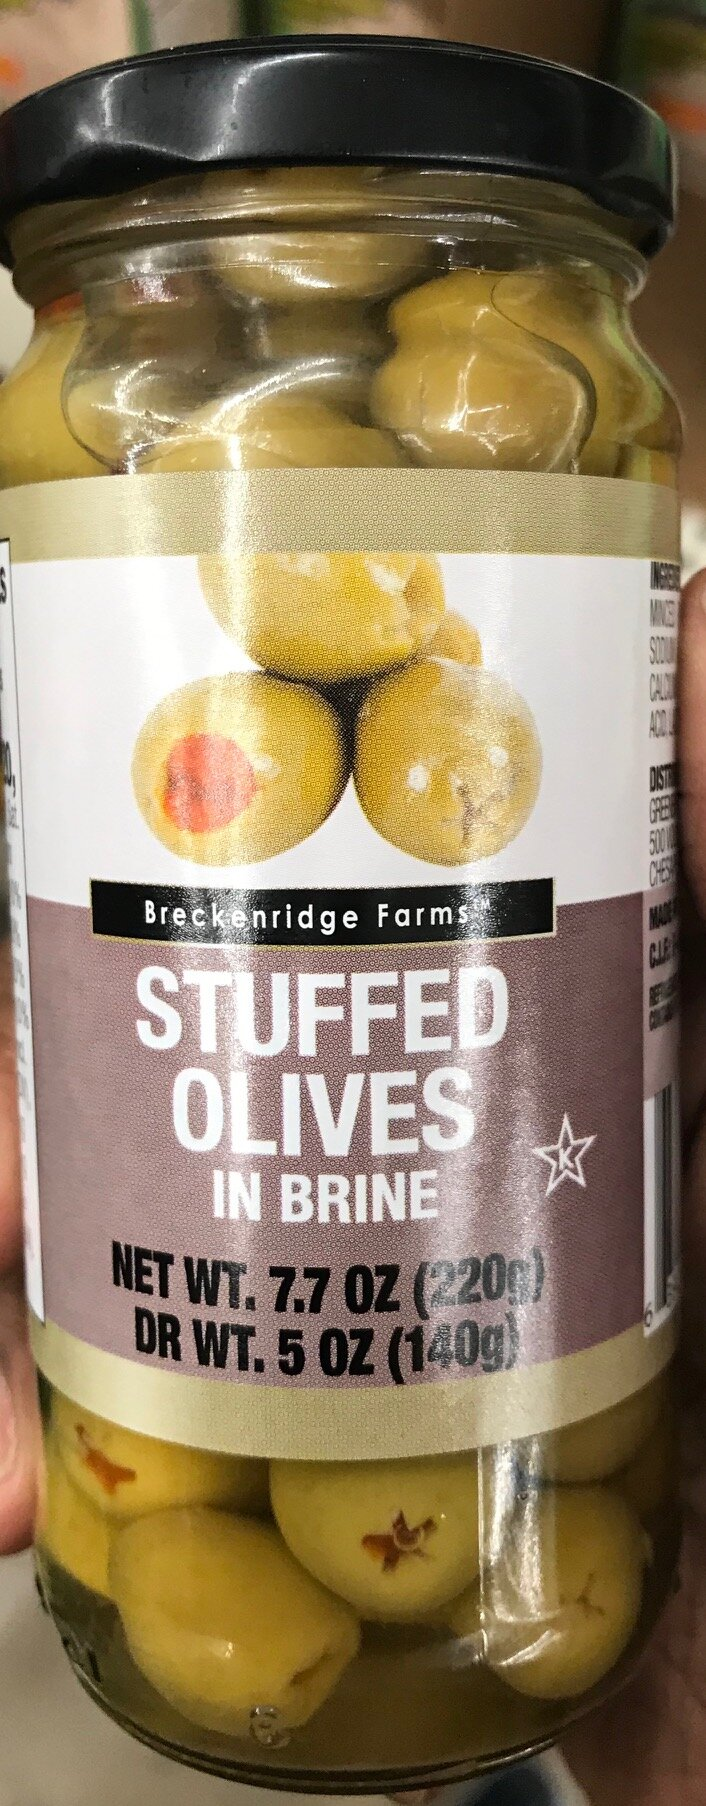 Keto-friendly snack at Dollar Tree - Stuffed Olives